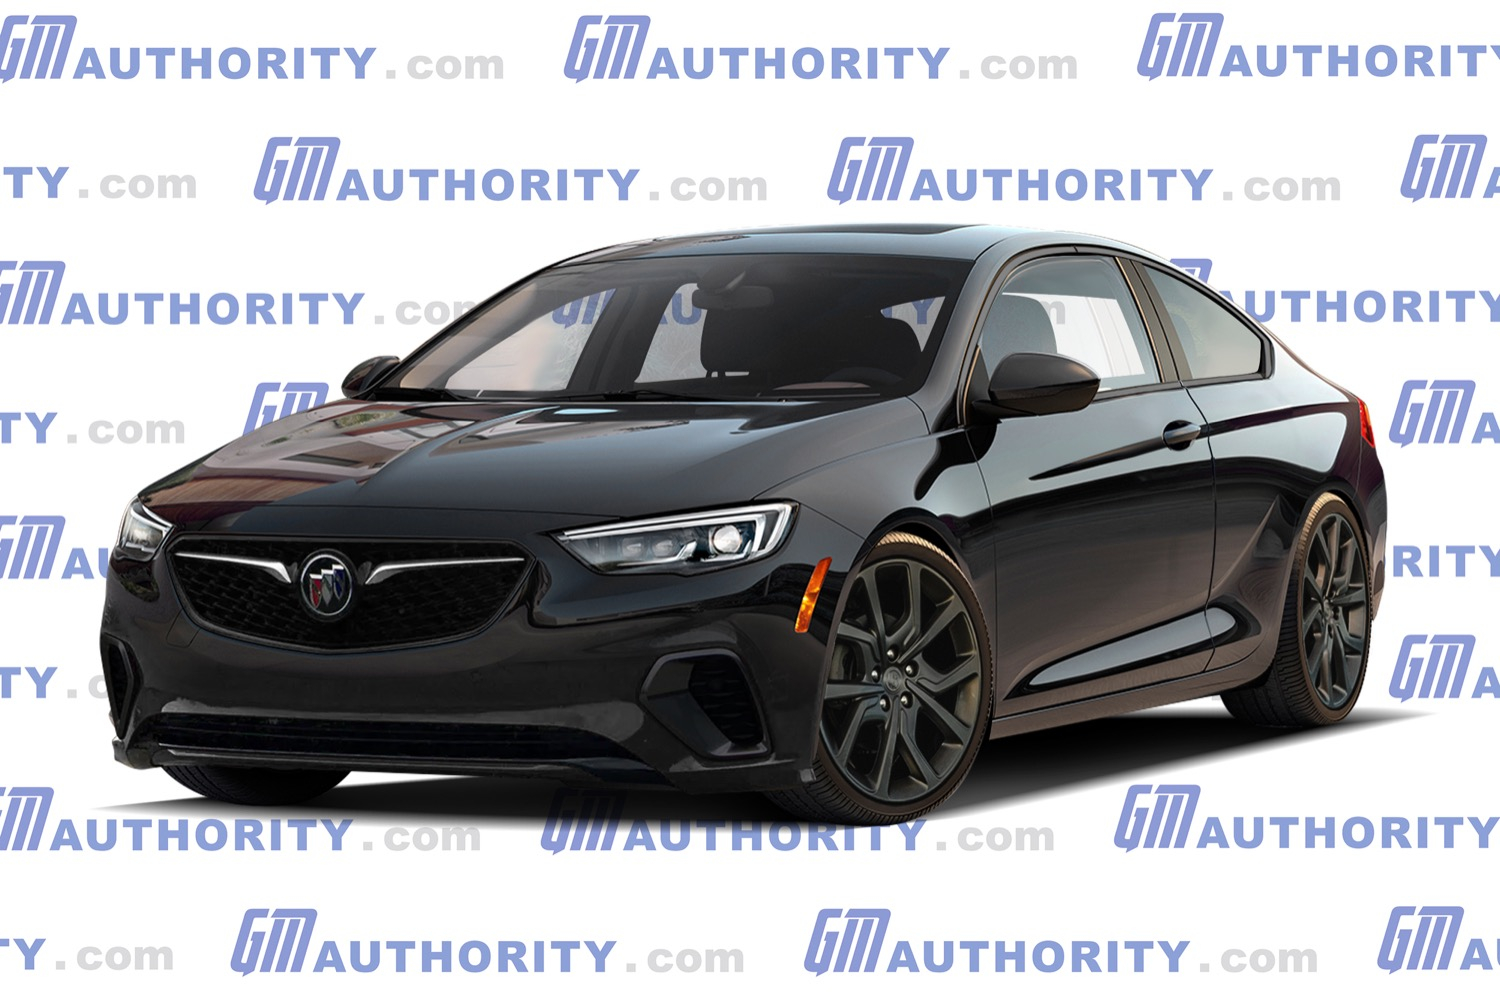 Modern Buick Regal Gnx Rendered | Gm Authority New 2022 Buick Regal Pictures, Price, Reviews